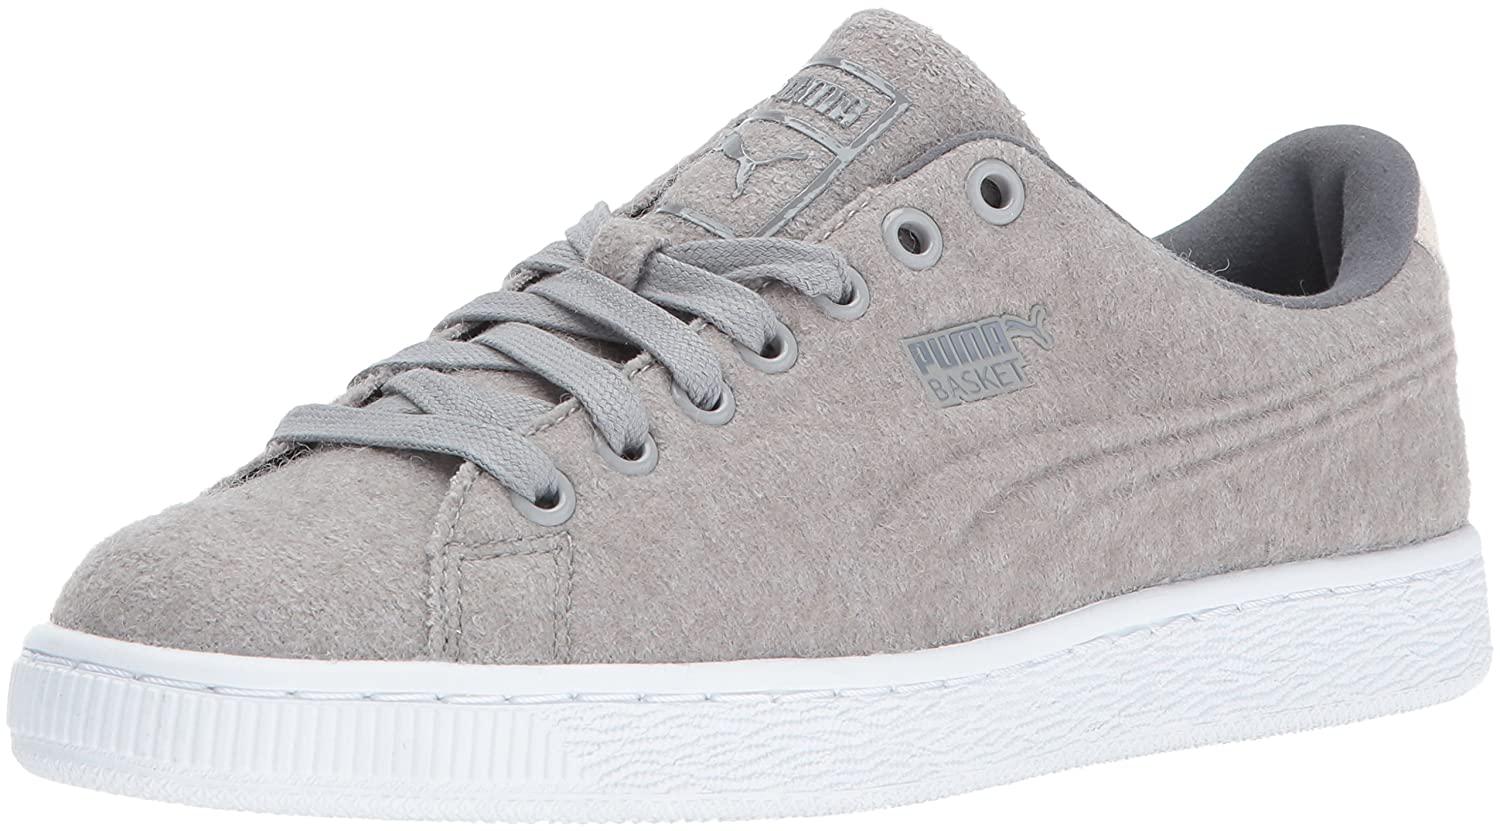 74a002bd898 Puma Men s Basket Classic Embossed Wool Fashion Sneaker